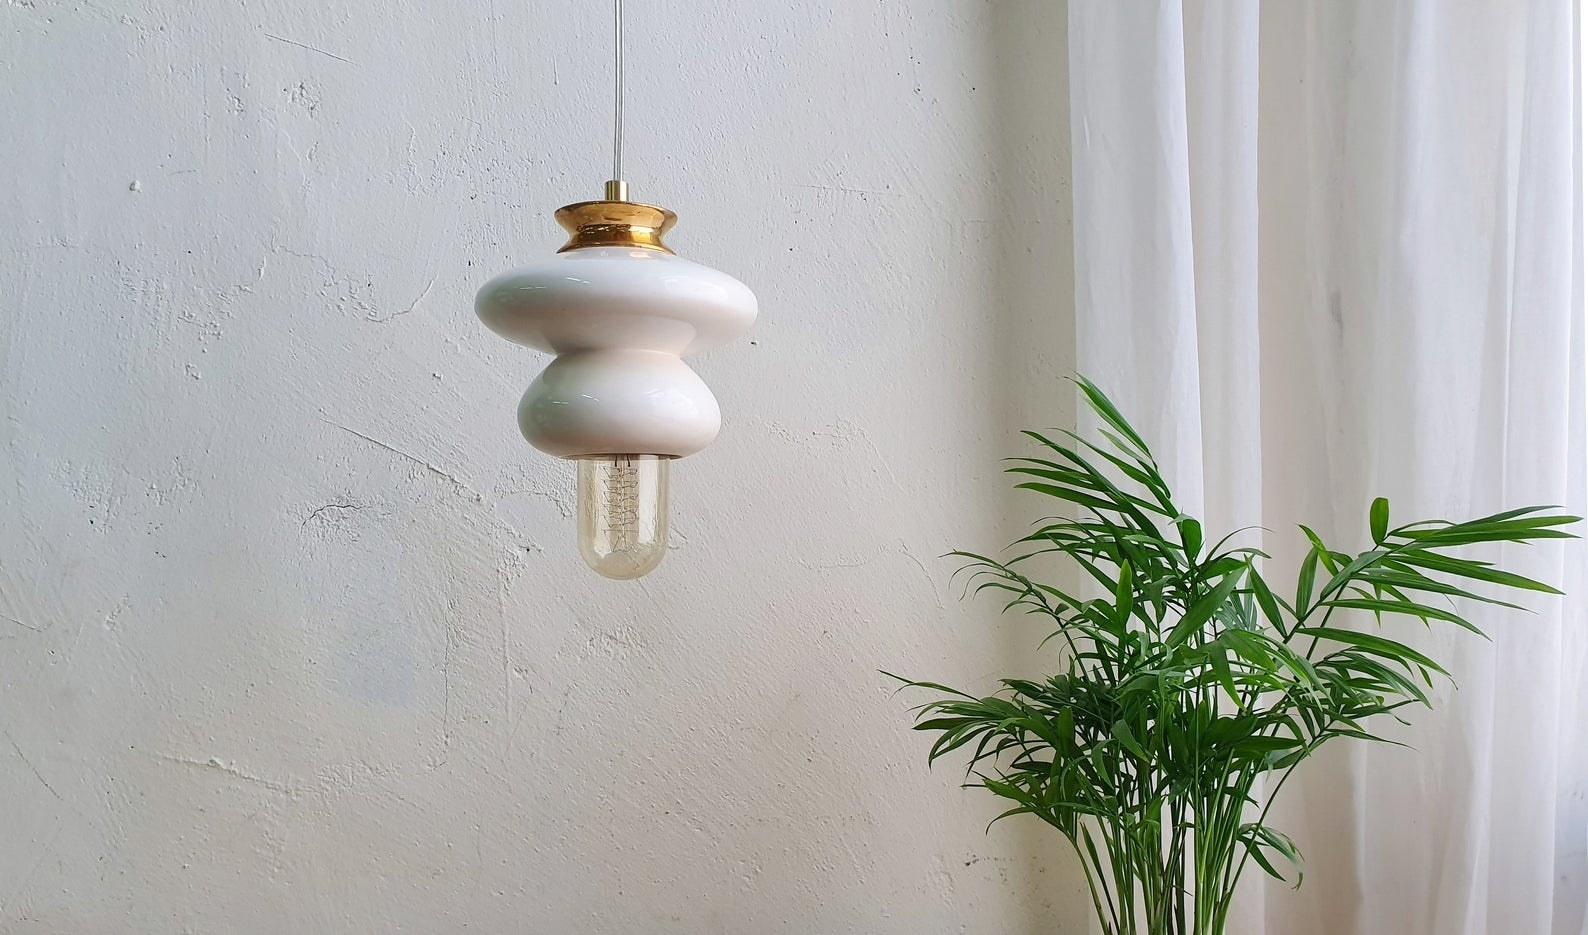 lamp hanging beside a plant